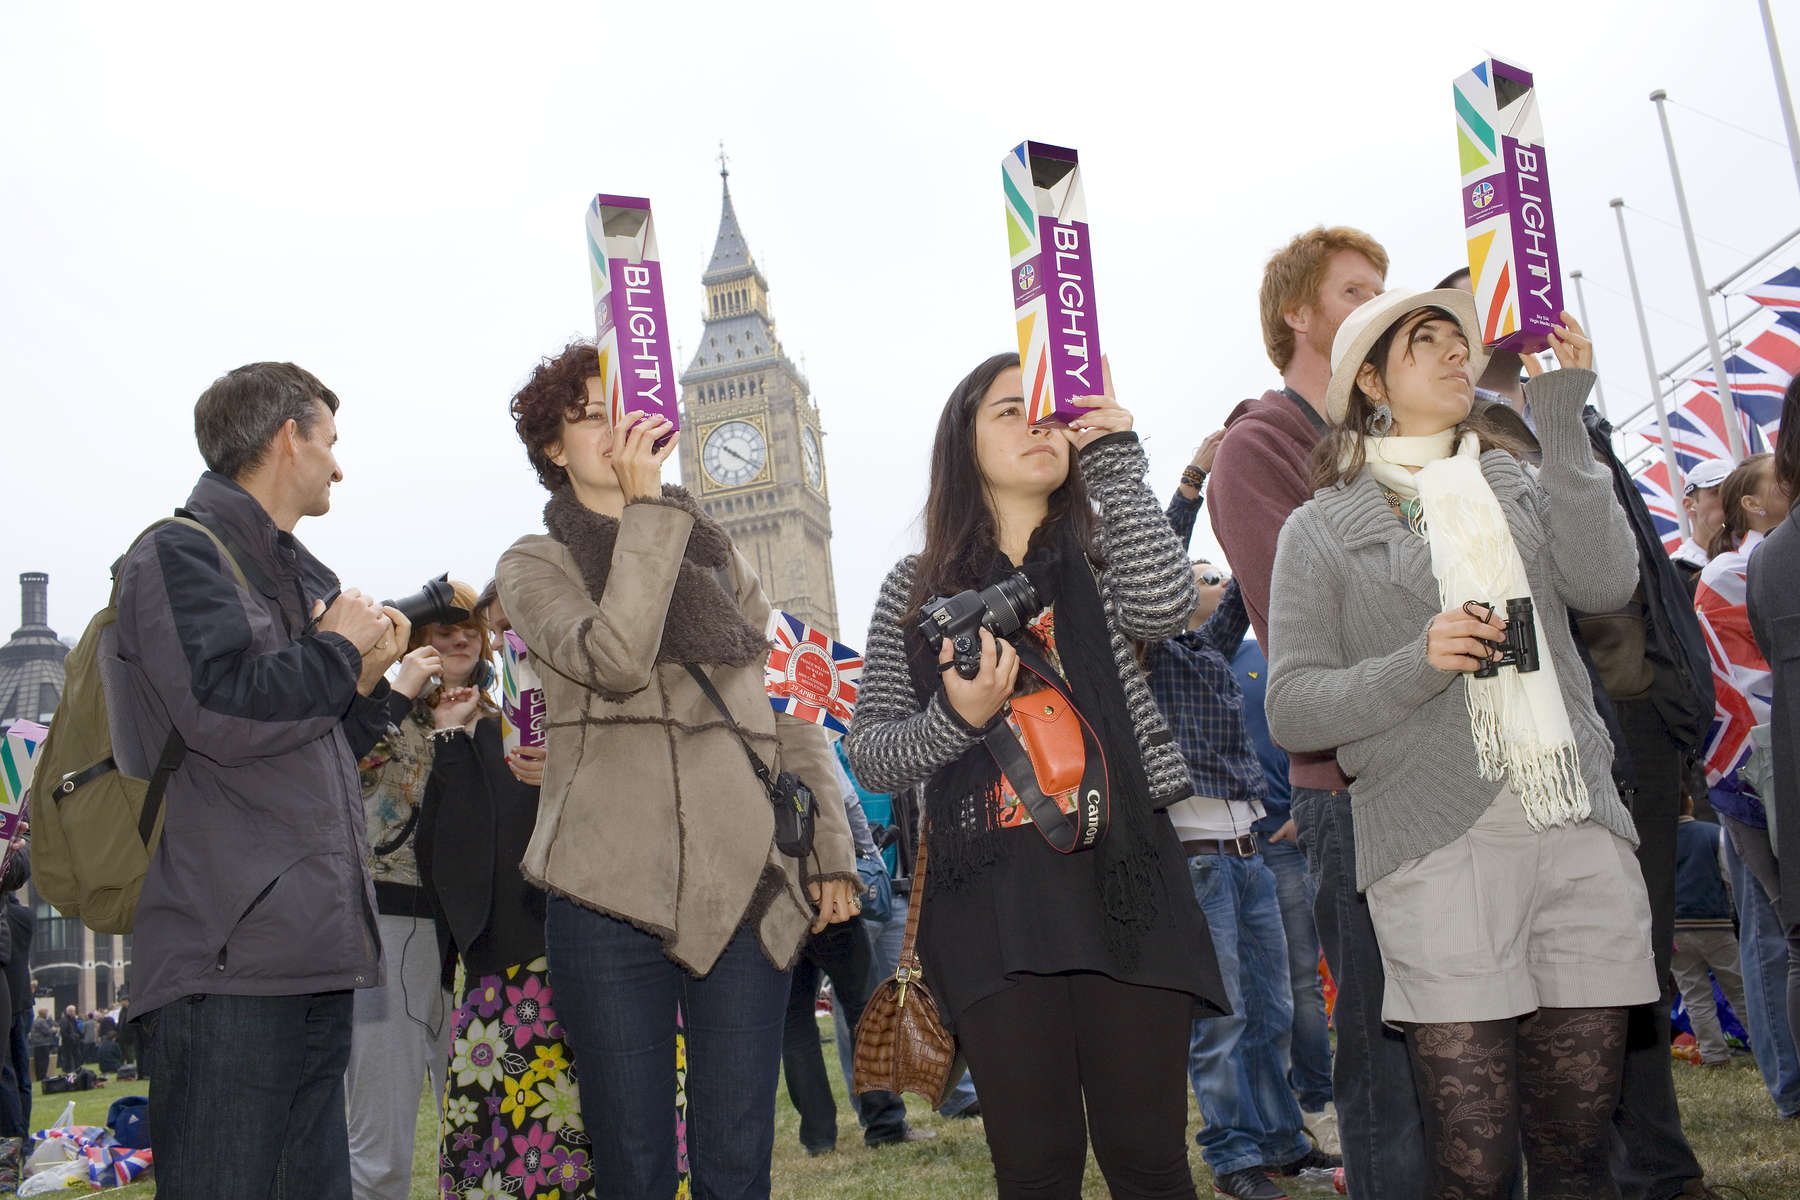 Spectators in Parliament Square watch guests arriving at Westminster Abbey with the help of a 'Blighty' periscope.